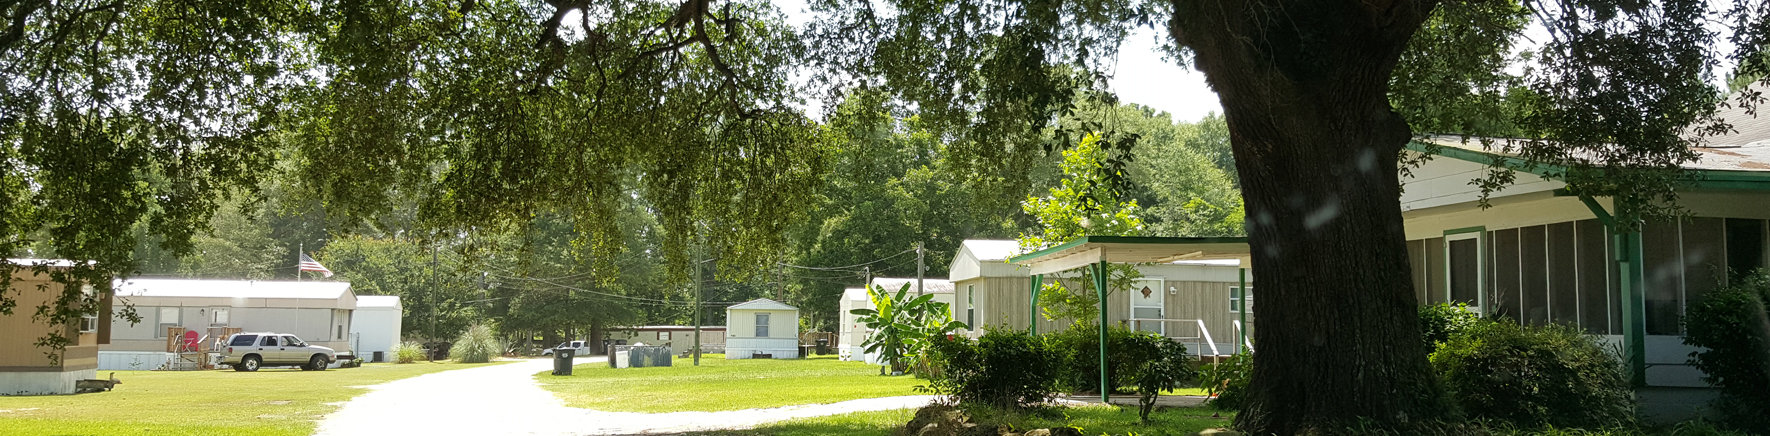 Southeast Mobile Home Park Broker